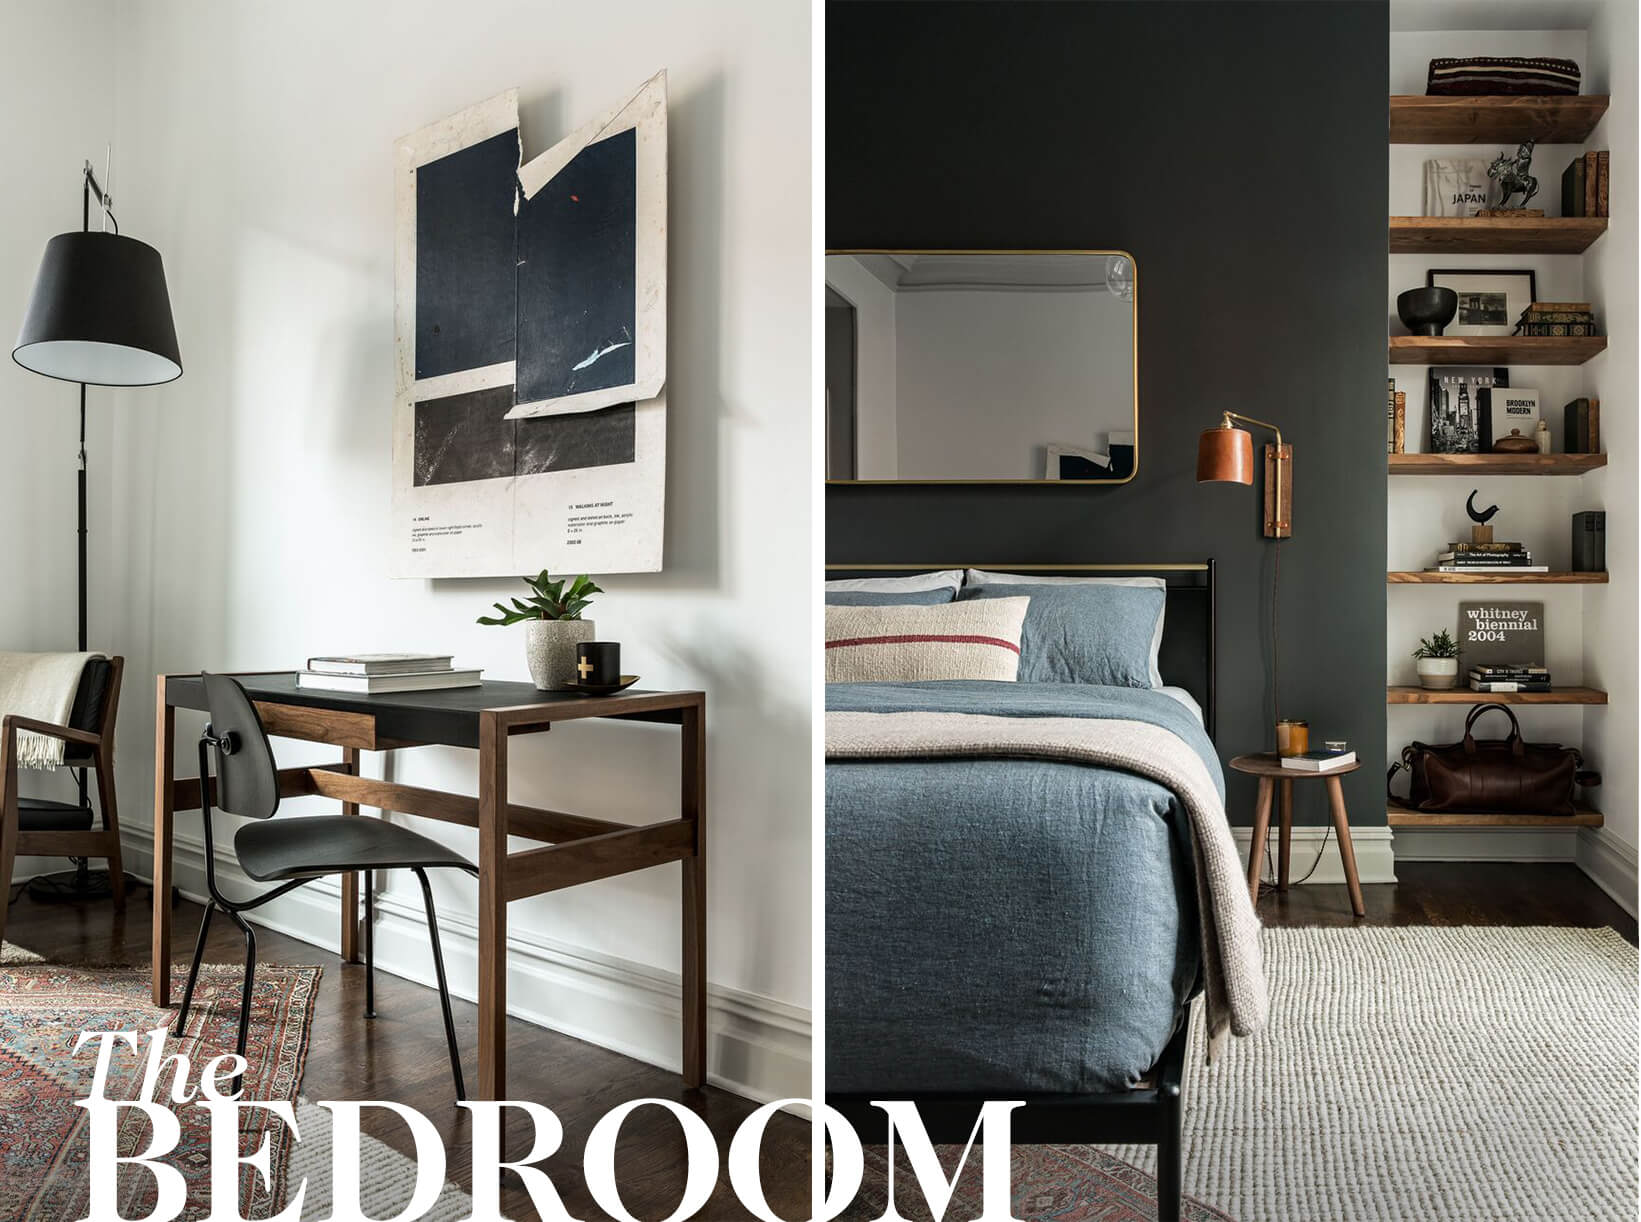 Tips for Making Your Home Feel More Considered